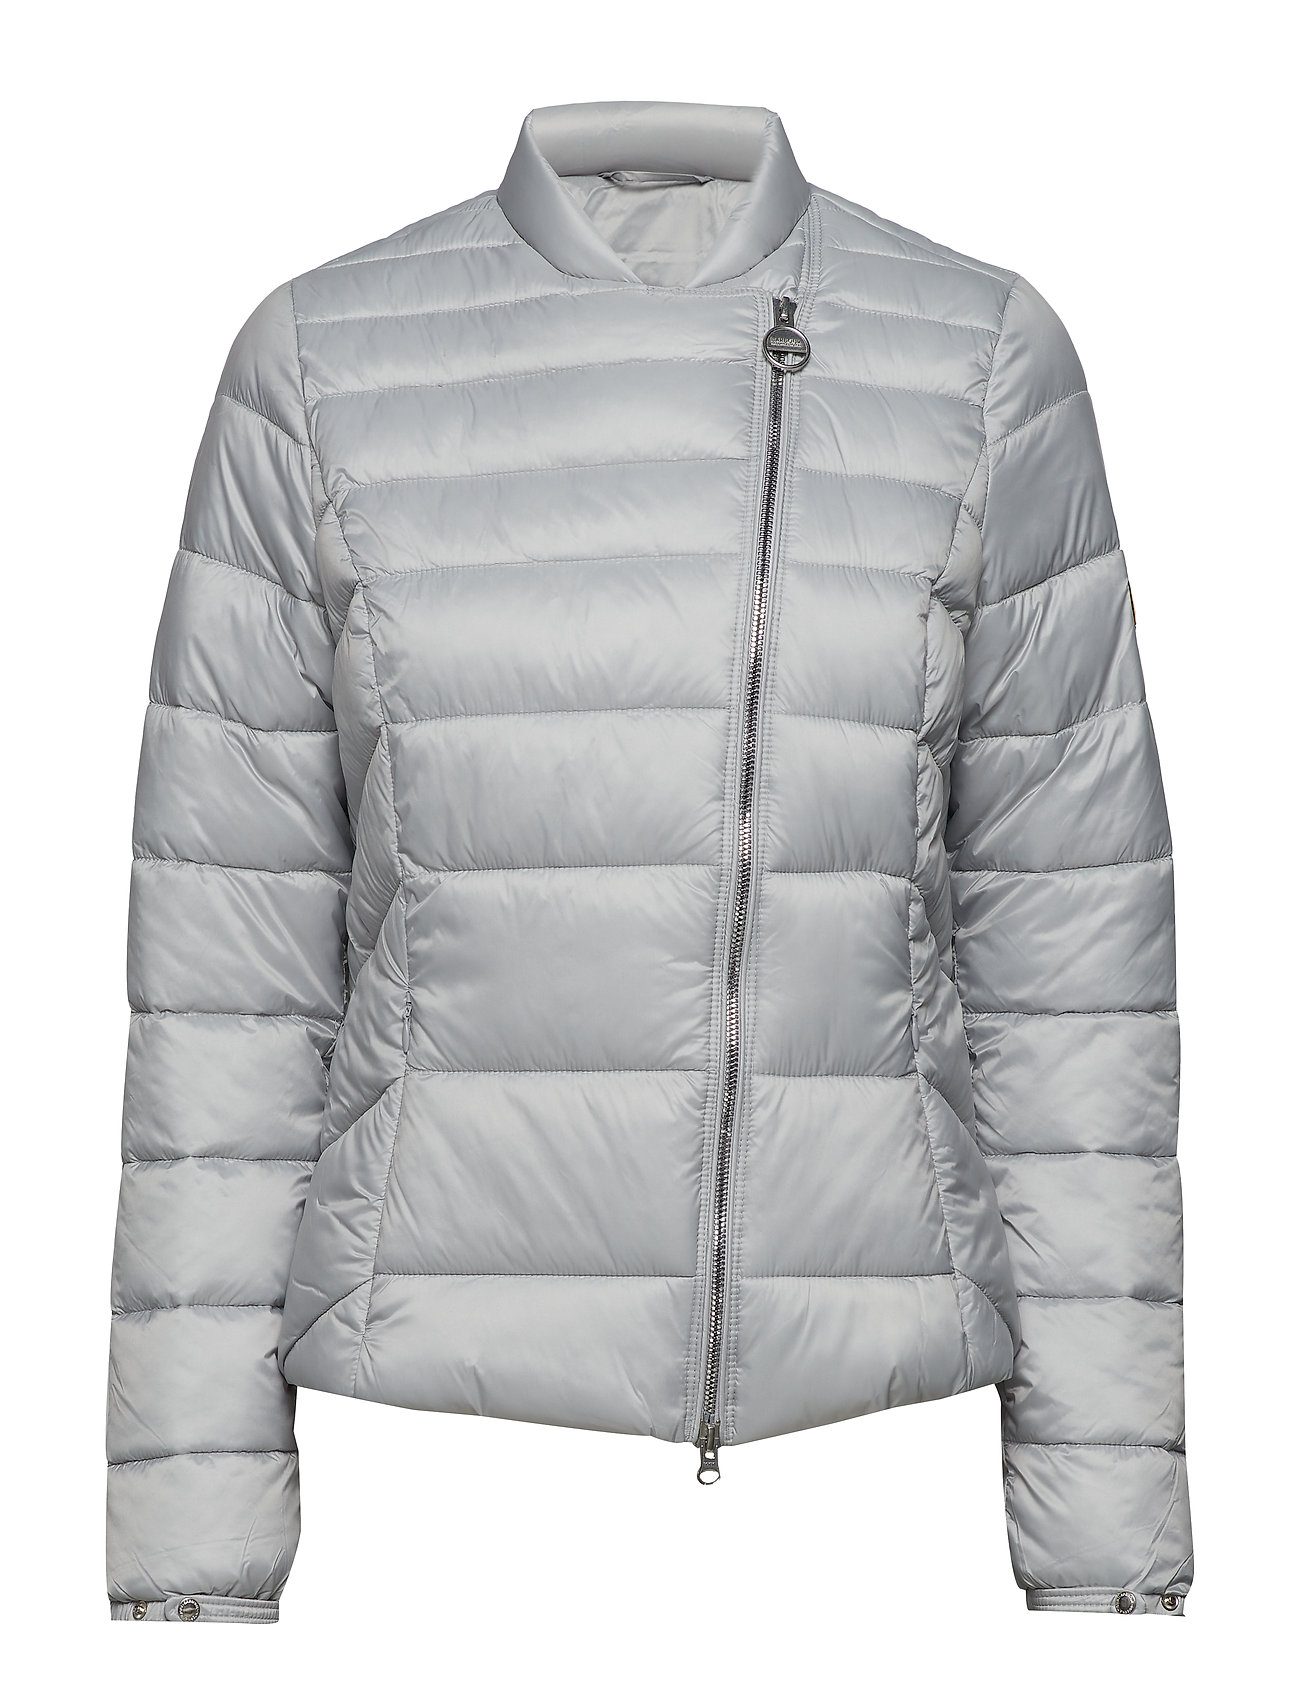 Barbour B.Intl Cortina Quilt - ICE WHITE